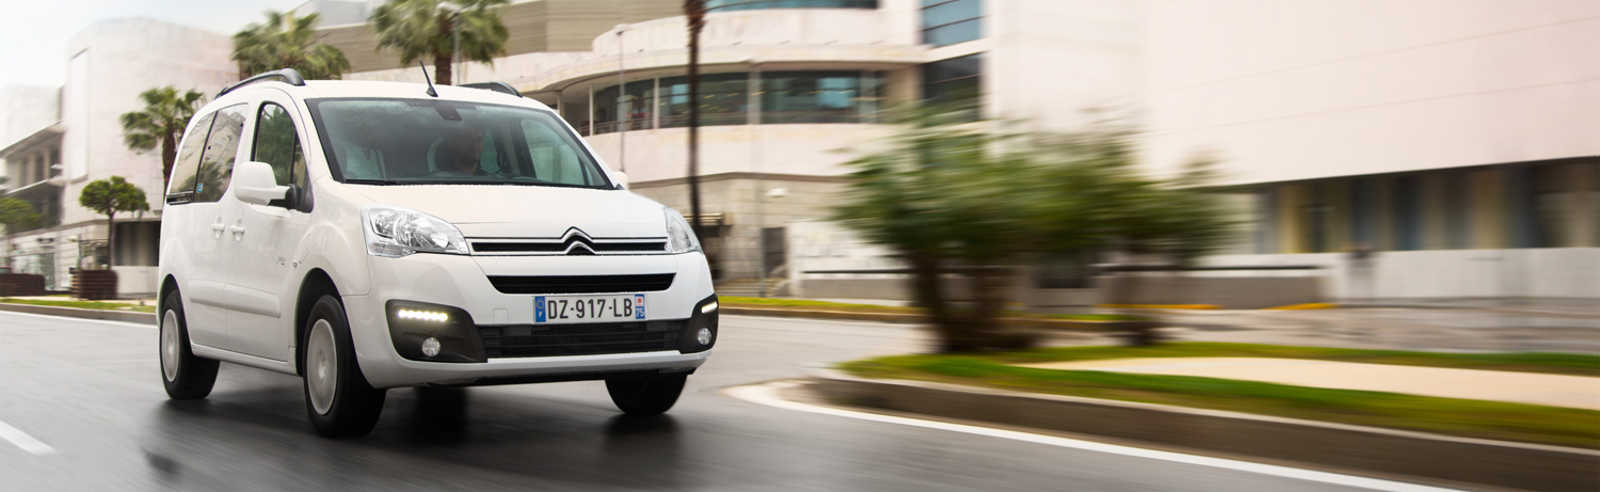 citroen eberlingo blanca